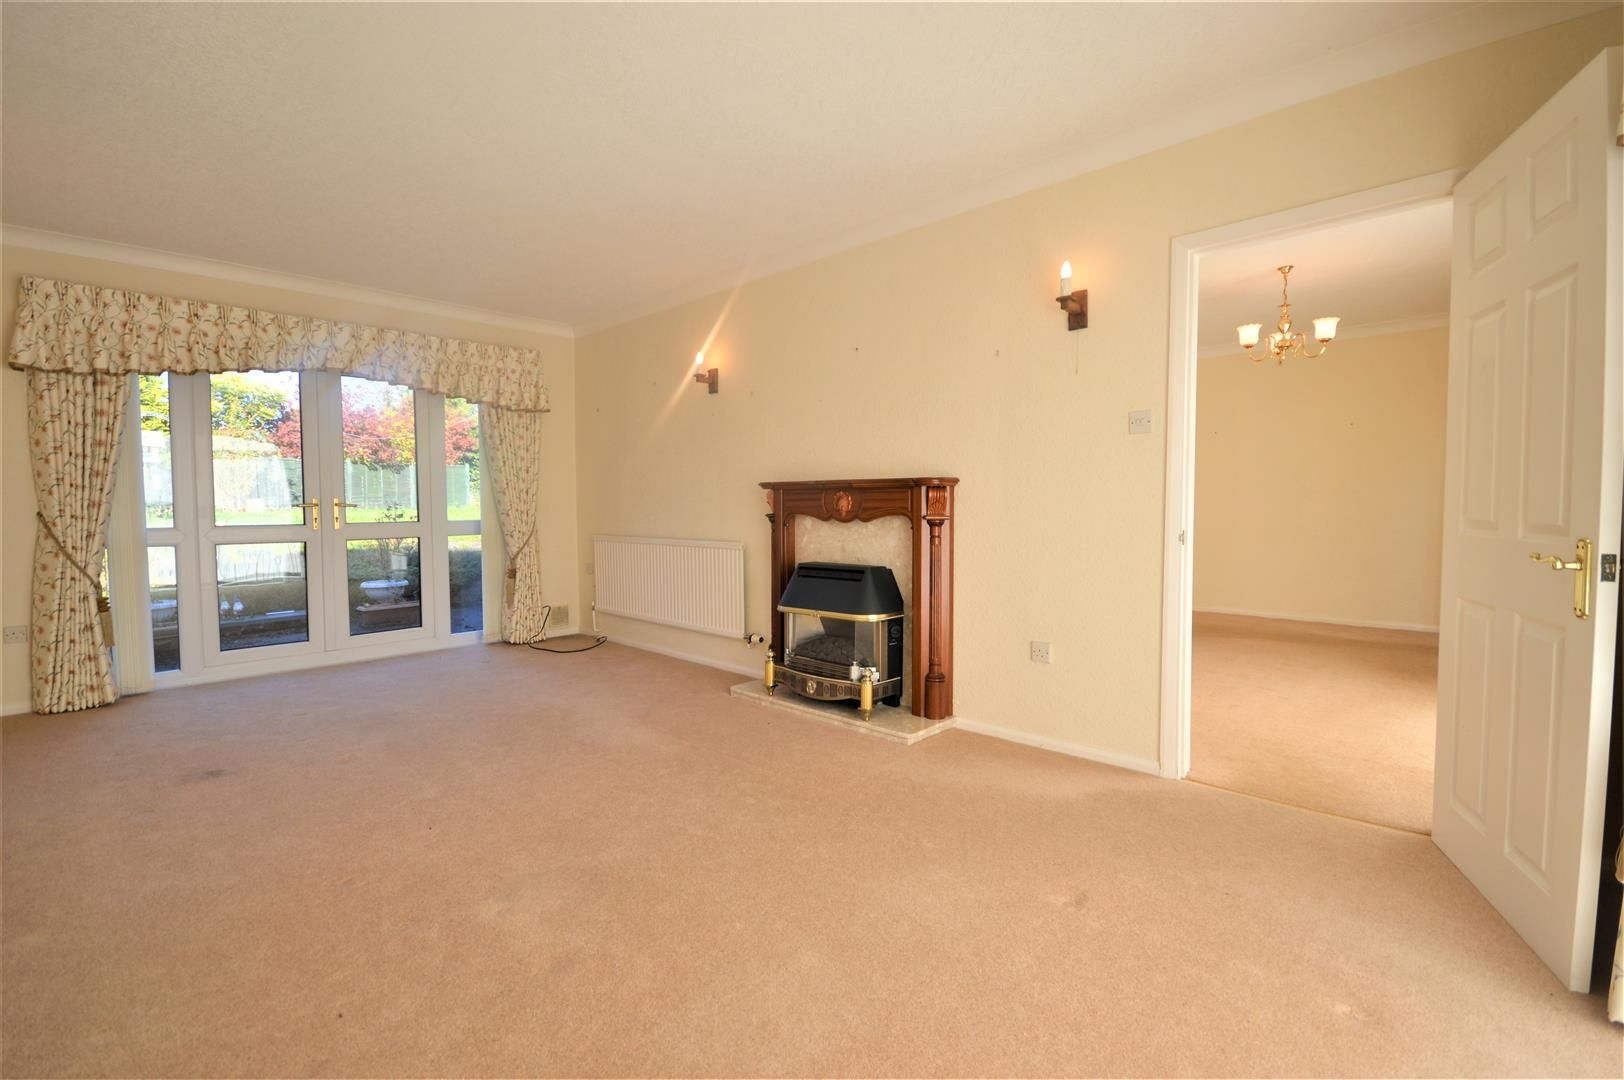 3 bed detached-bungalow for sale in Leominster  - Property Image 2